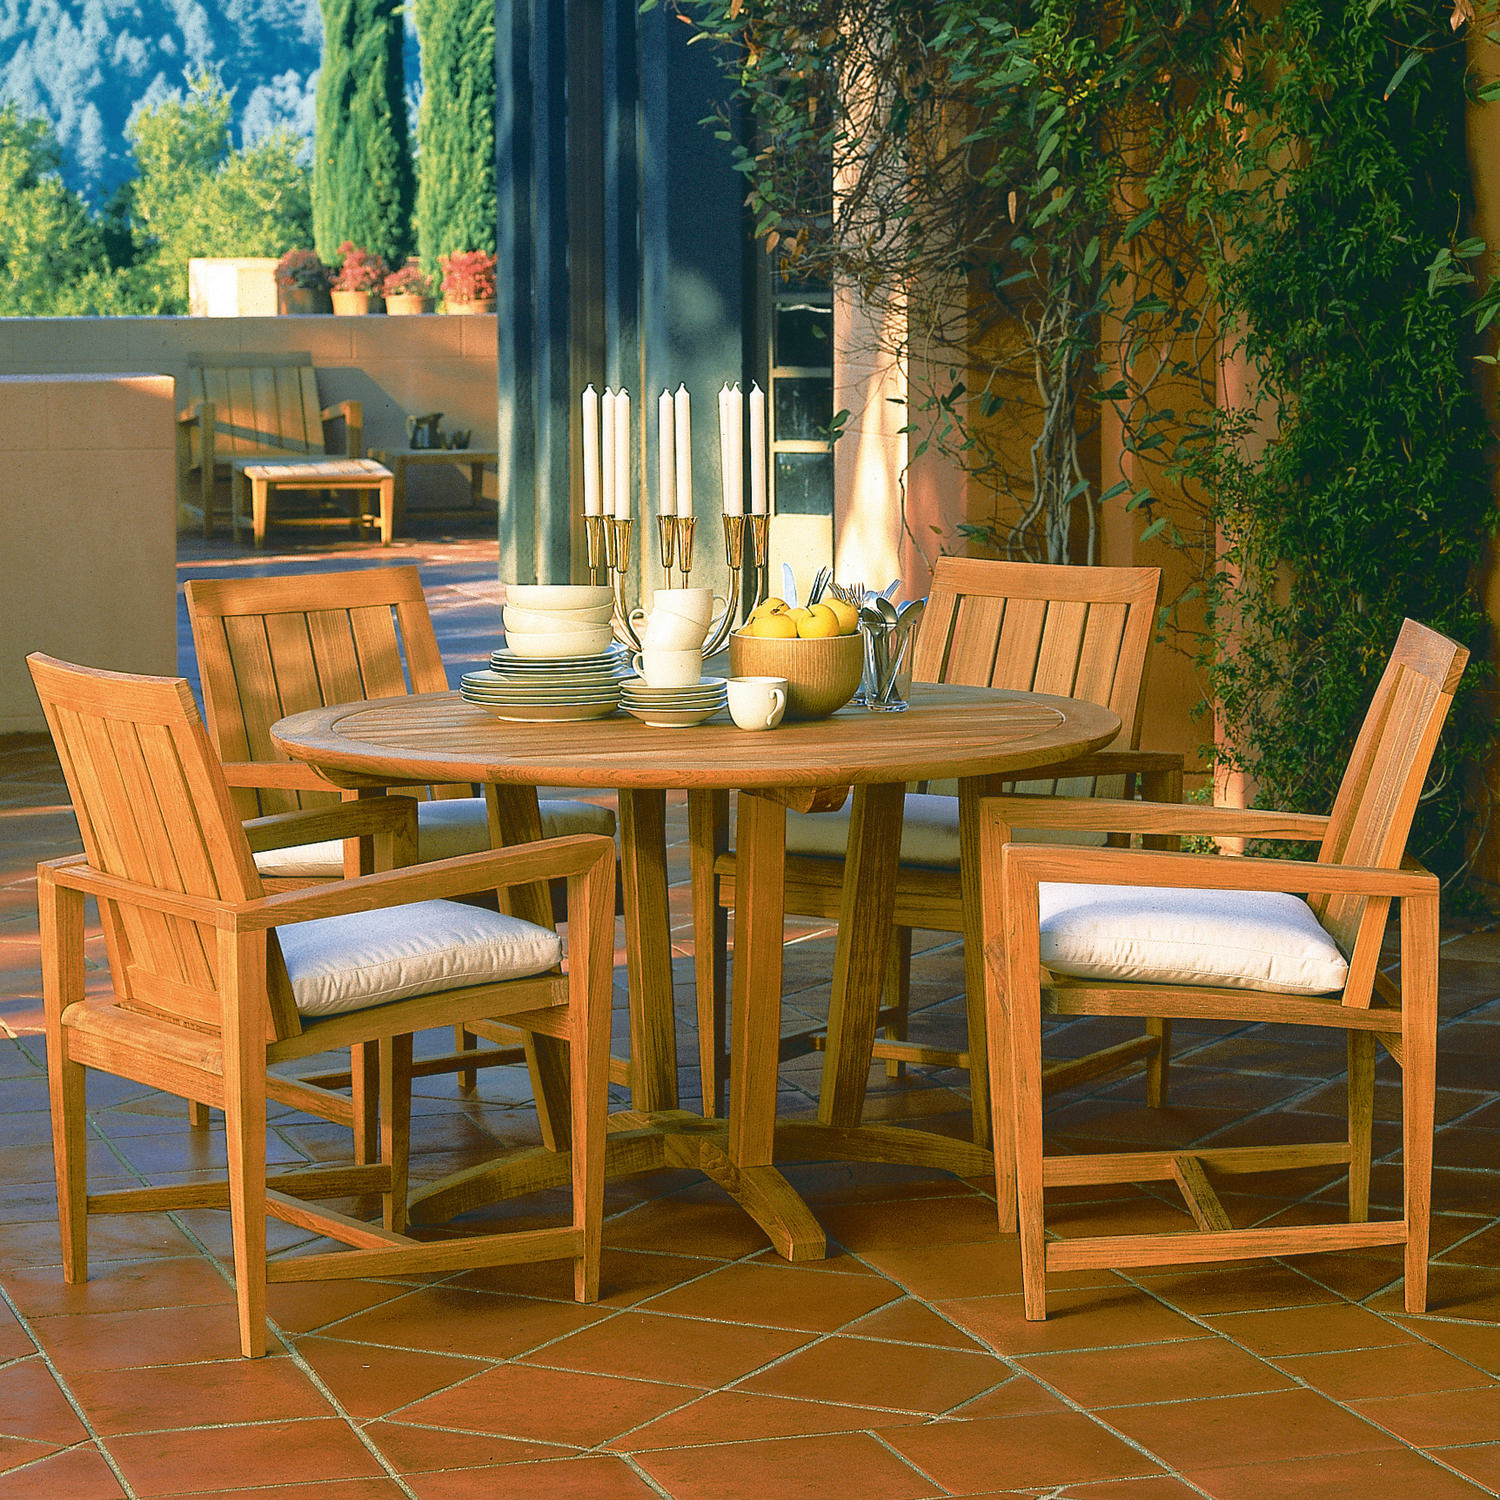 Amalfi 5-PC Dining Set - Teak ... - Amalfi 5-PC Dining Set - Teak By Kingsley-Bate Gabberts